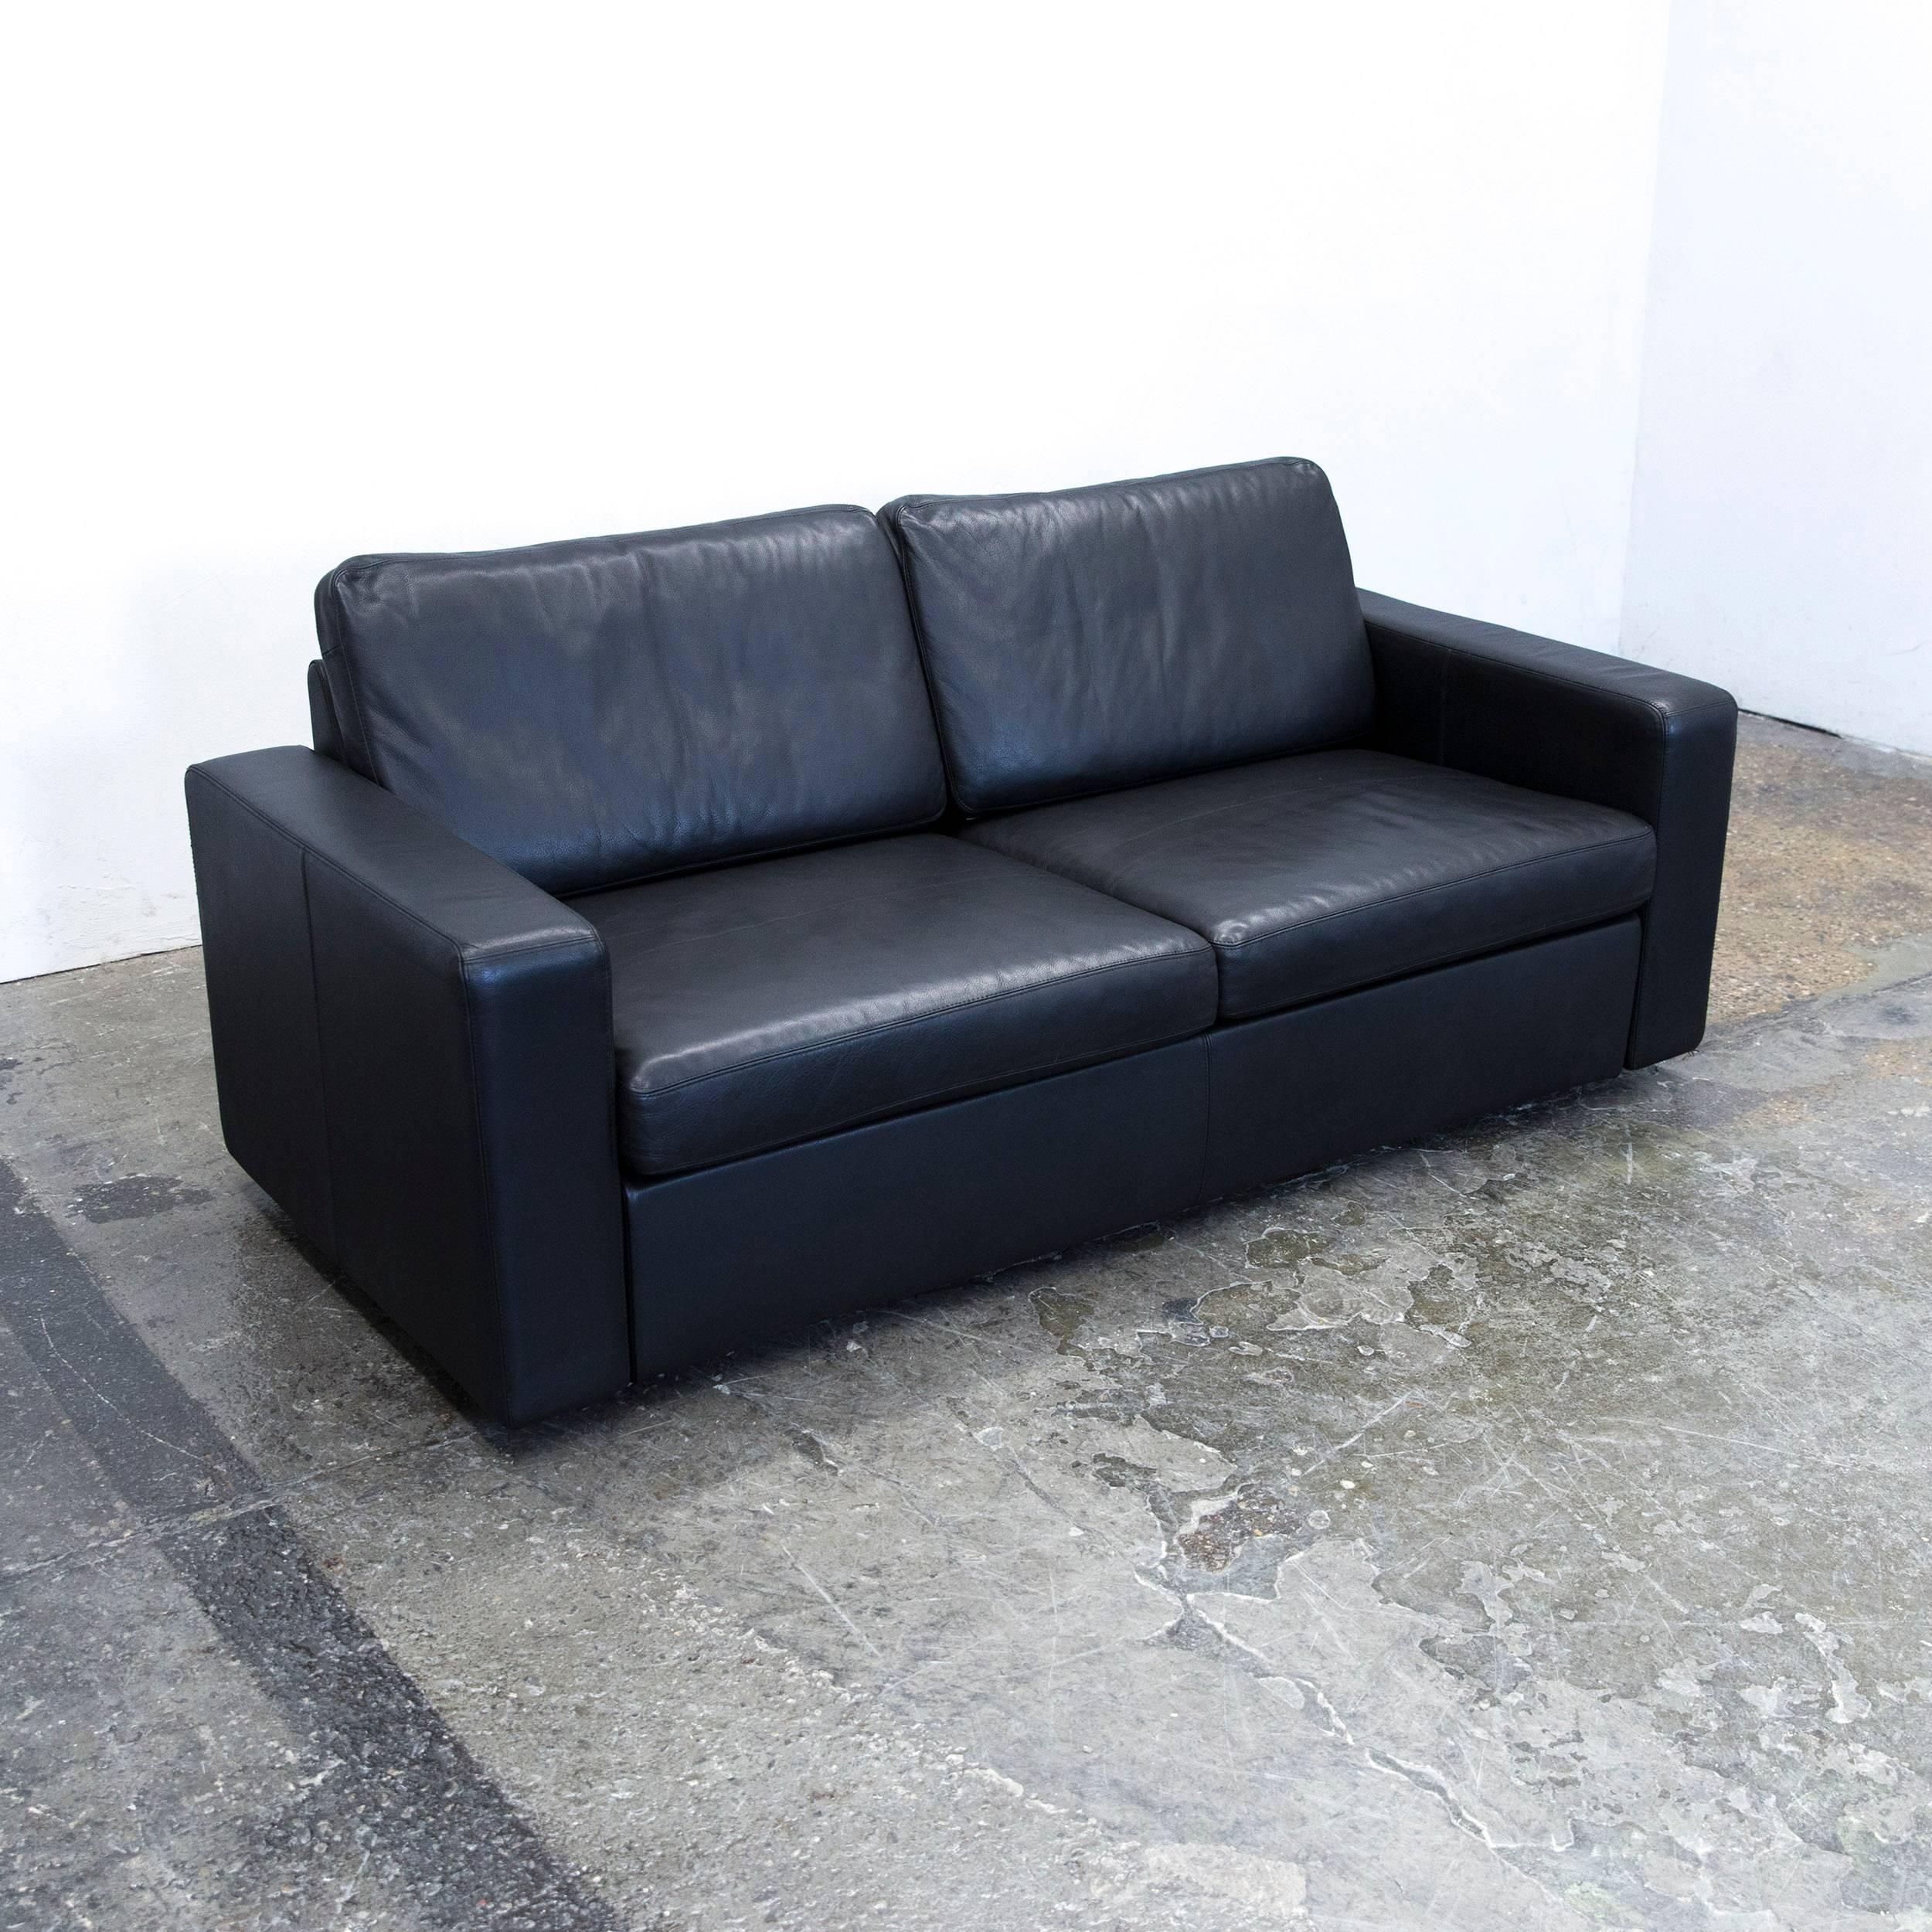 Schlafsofa Cor Cor Conseta Designer Sofa Leather Black Sleepsofa Three Seat Couch Modern